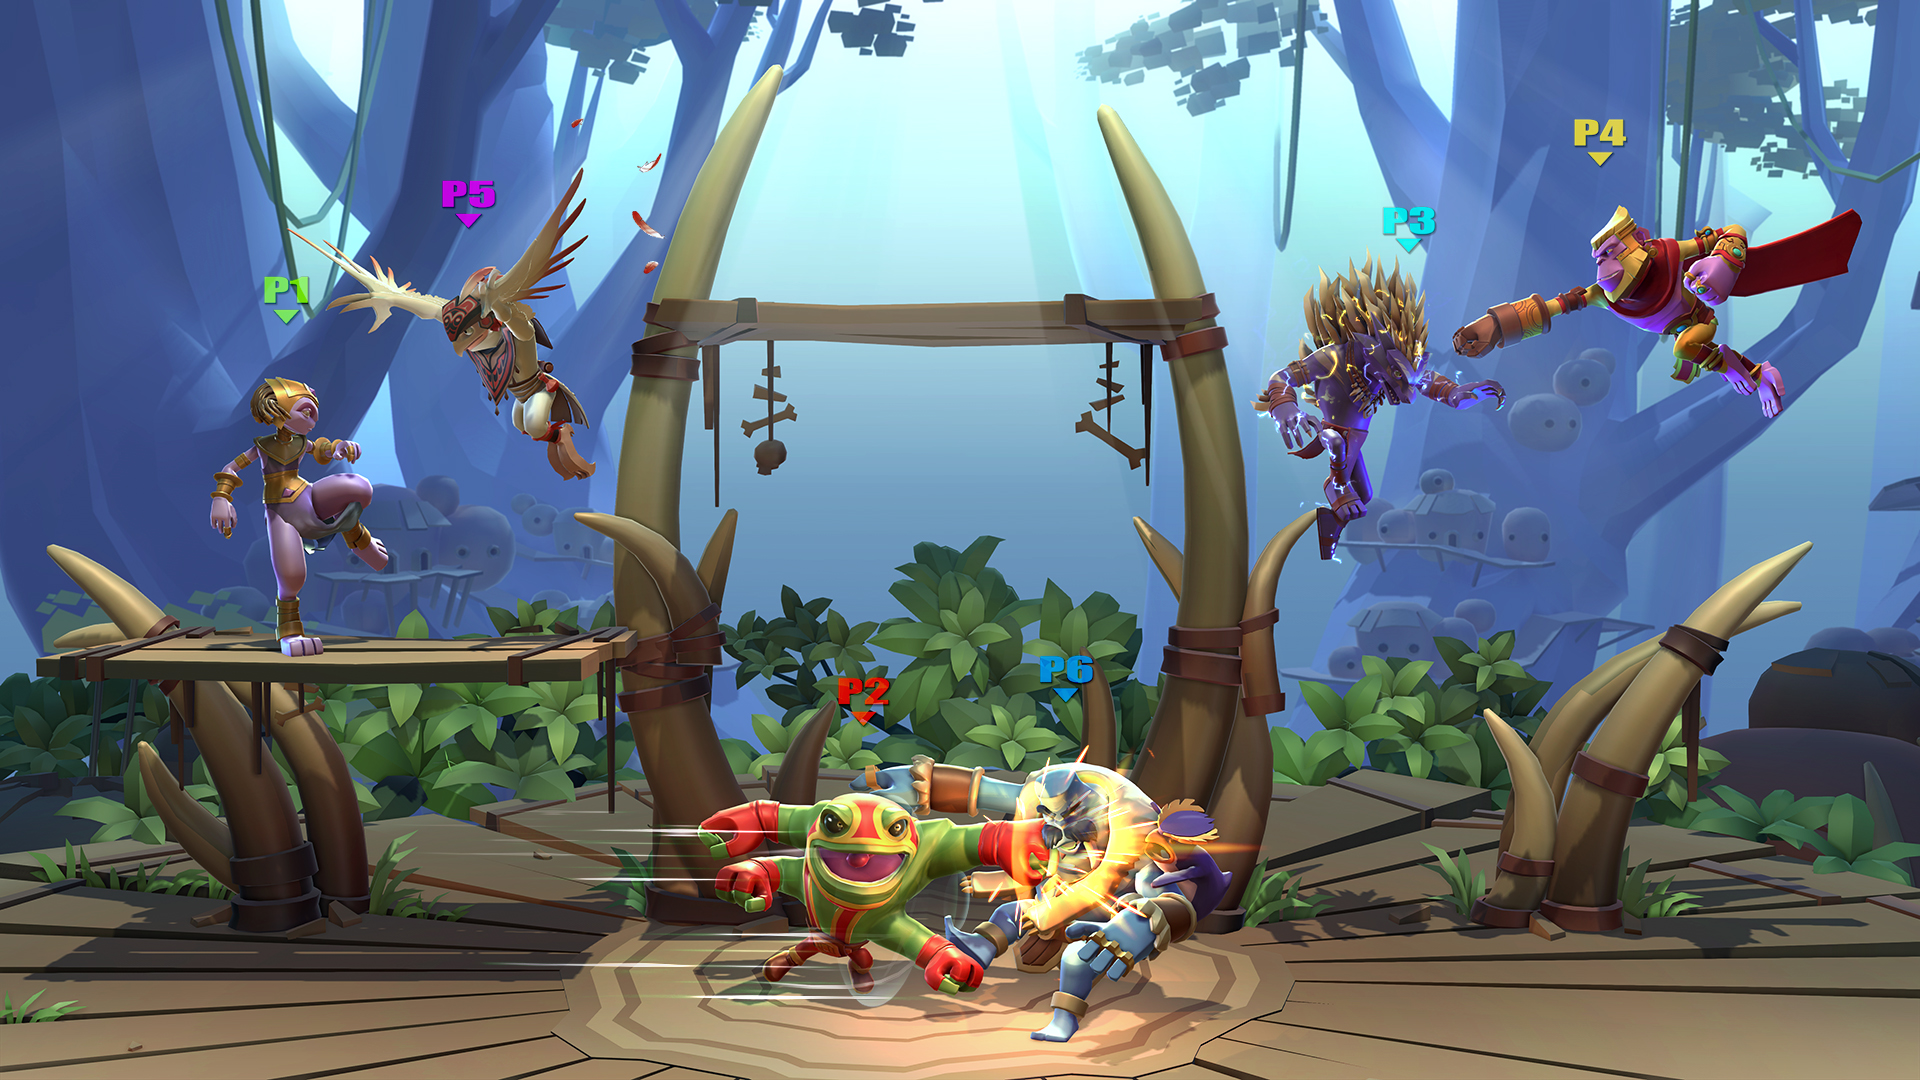 An example of a fight in Brawlout